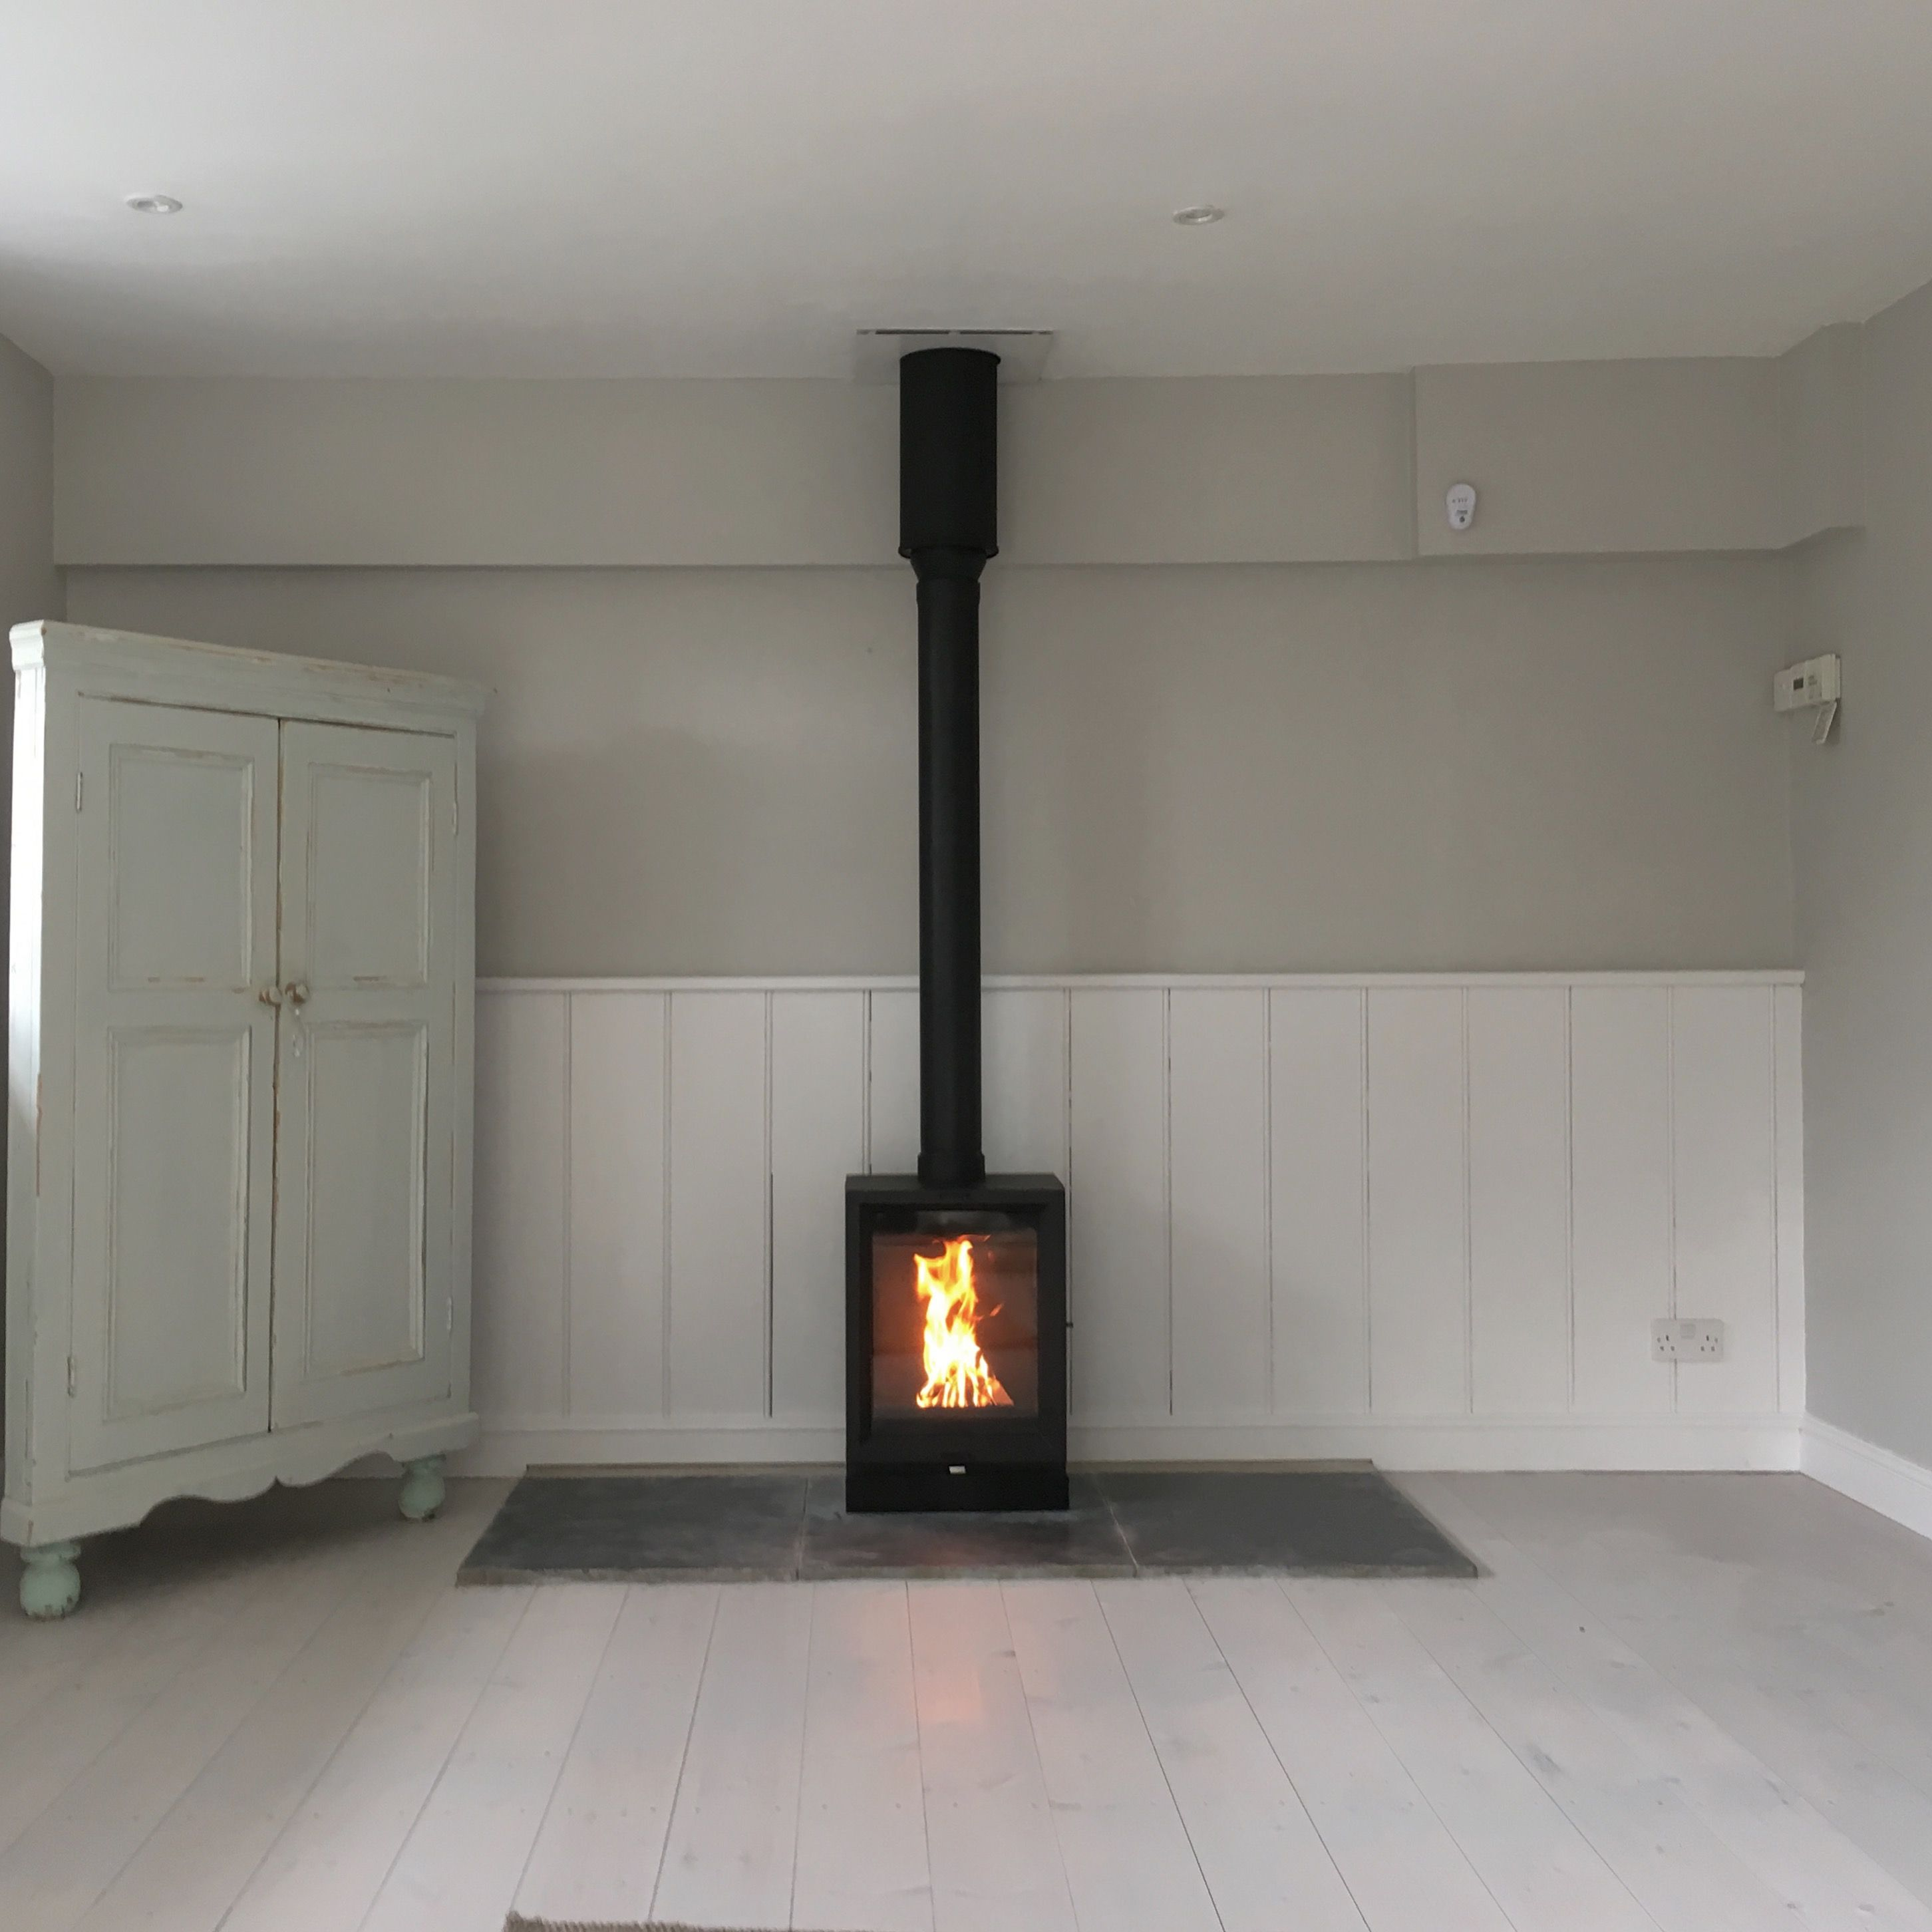 Stovax View 5t With Twin Wall Flue System Stove